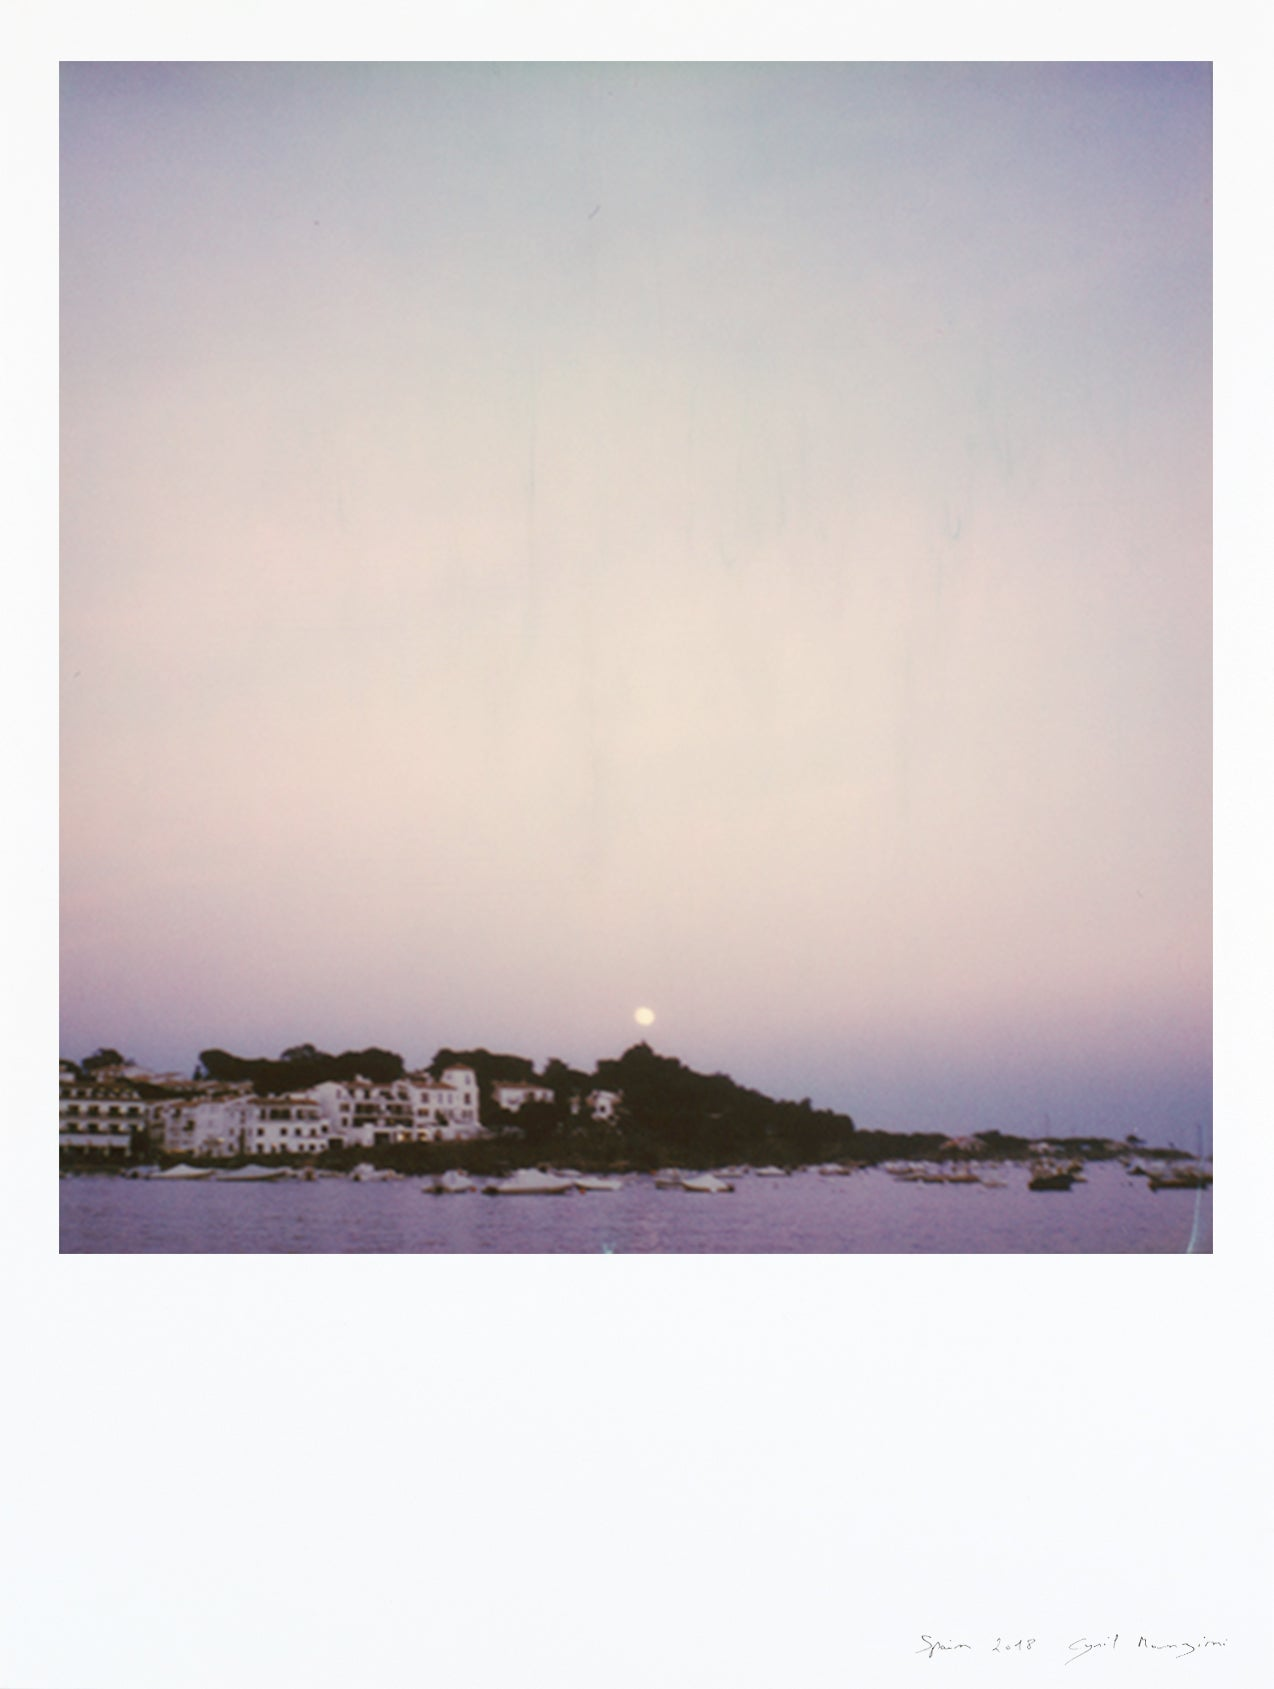 Impression polaroid grand format port de Cadaques au clair de lune